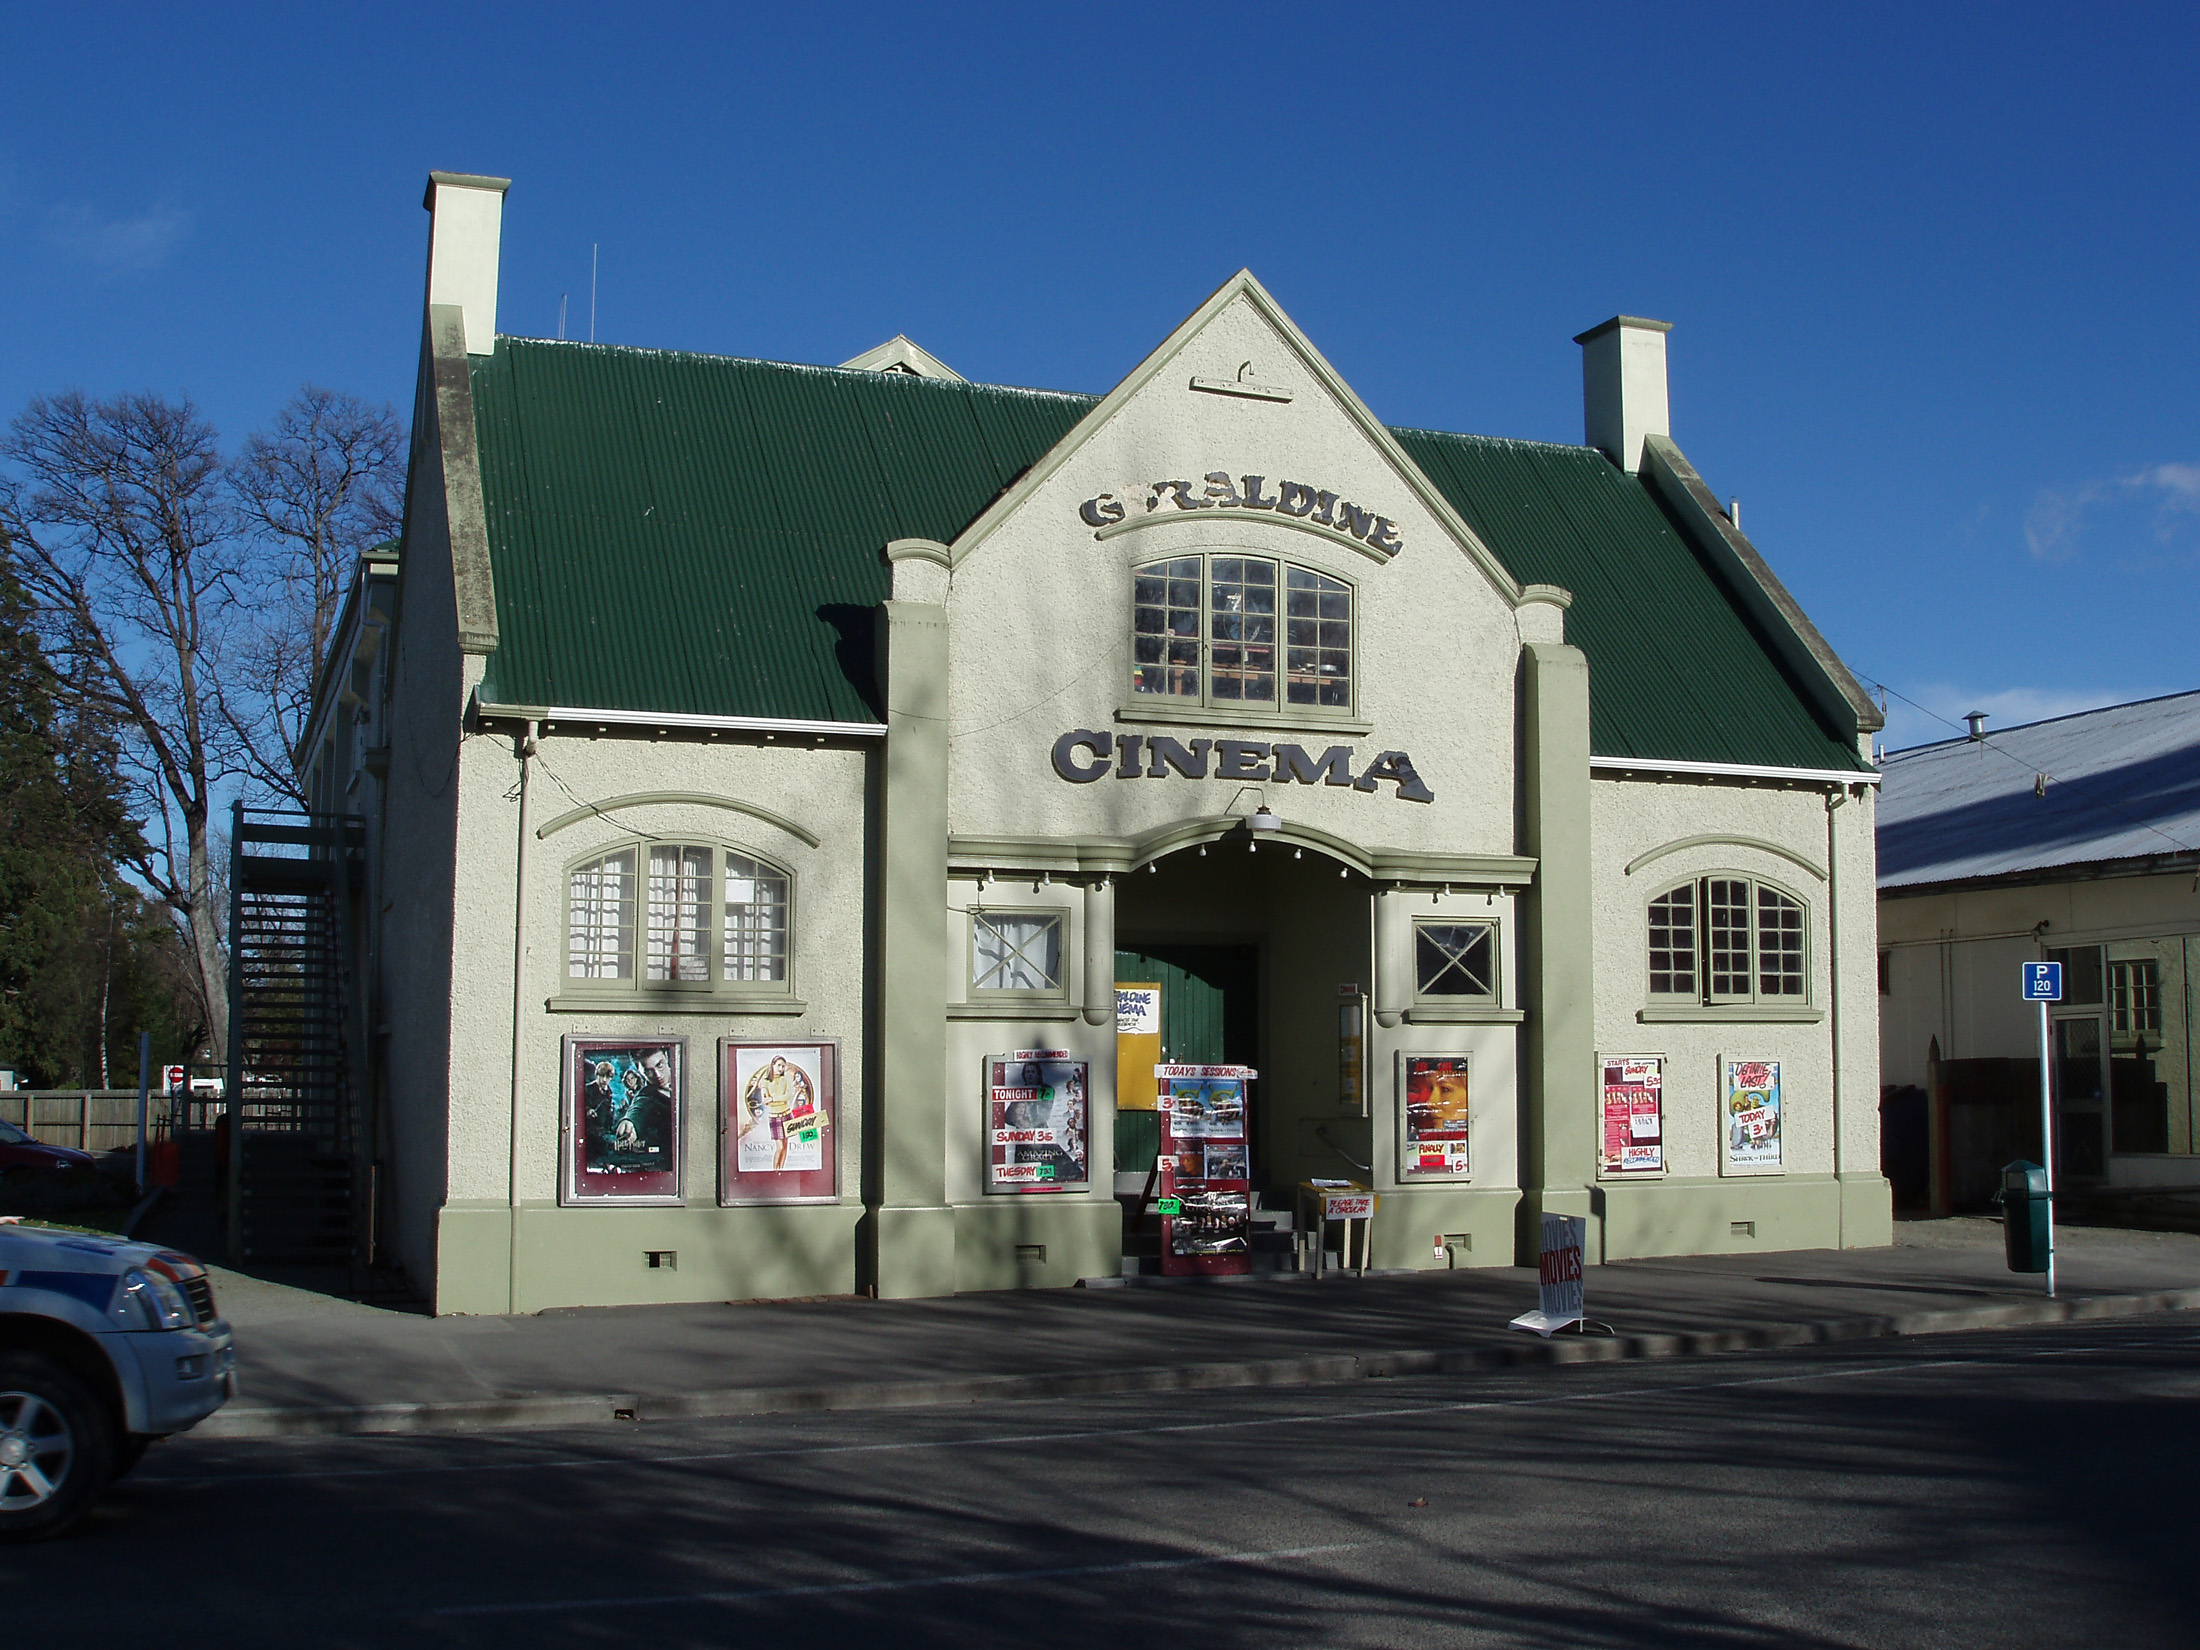 Geraldine New Zealand  city photos gallery : Free Stock photo of geraldine cinema | Photoeverywhere